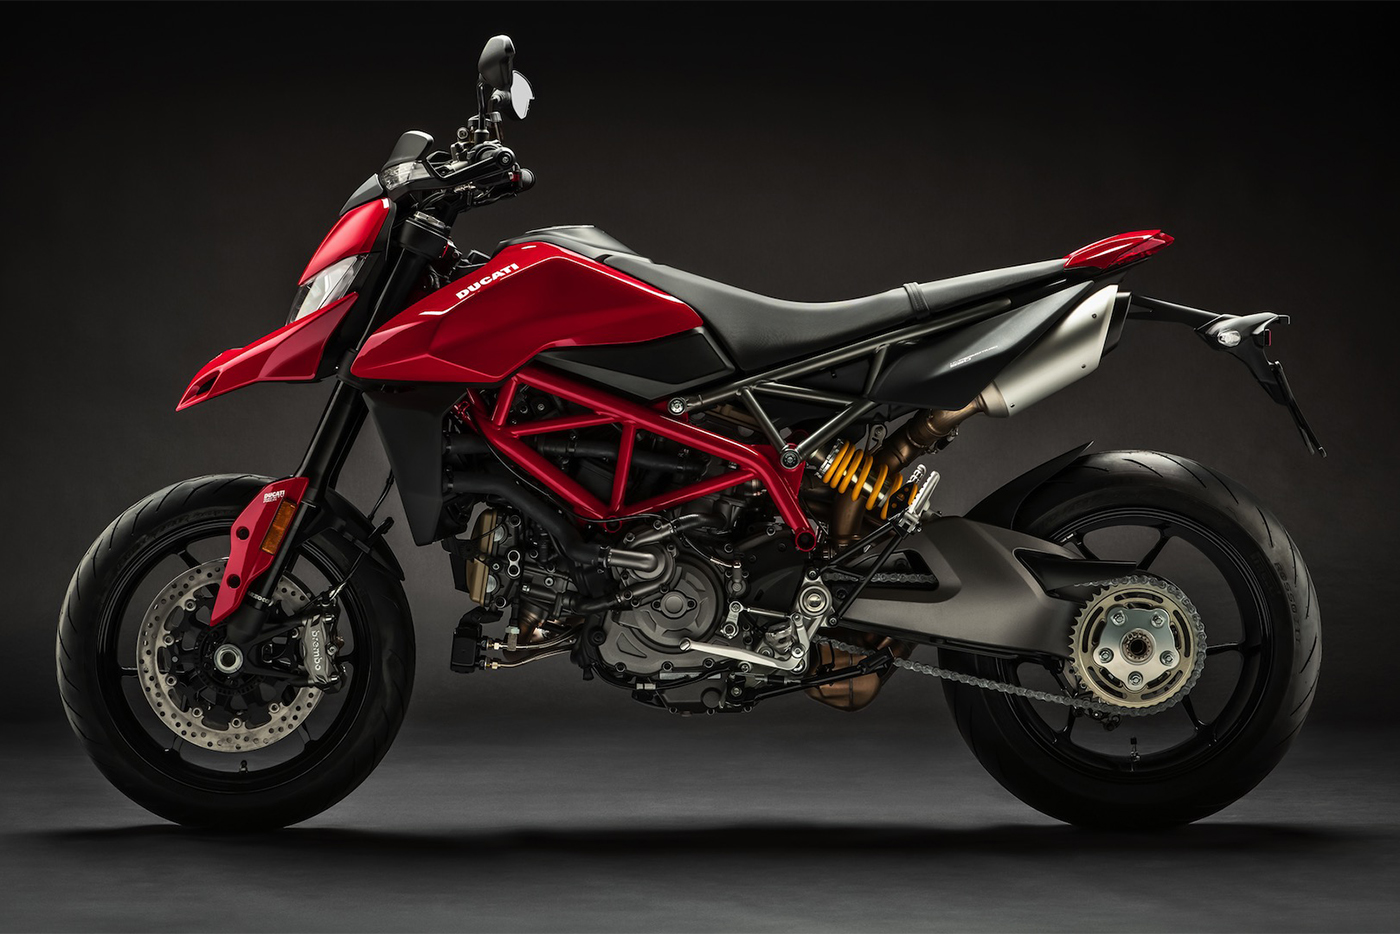 2019-ducati-monster-hypermotard-950-1.jpg